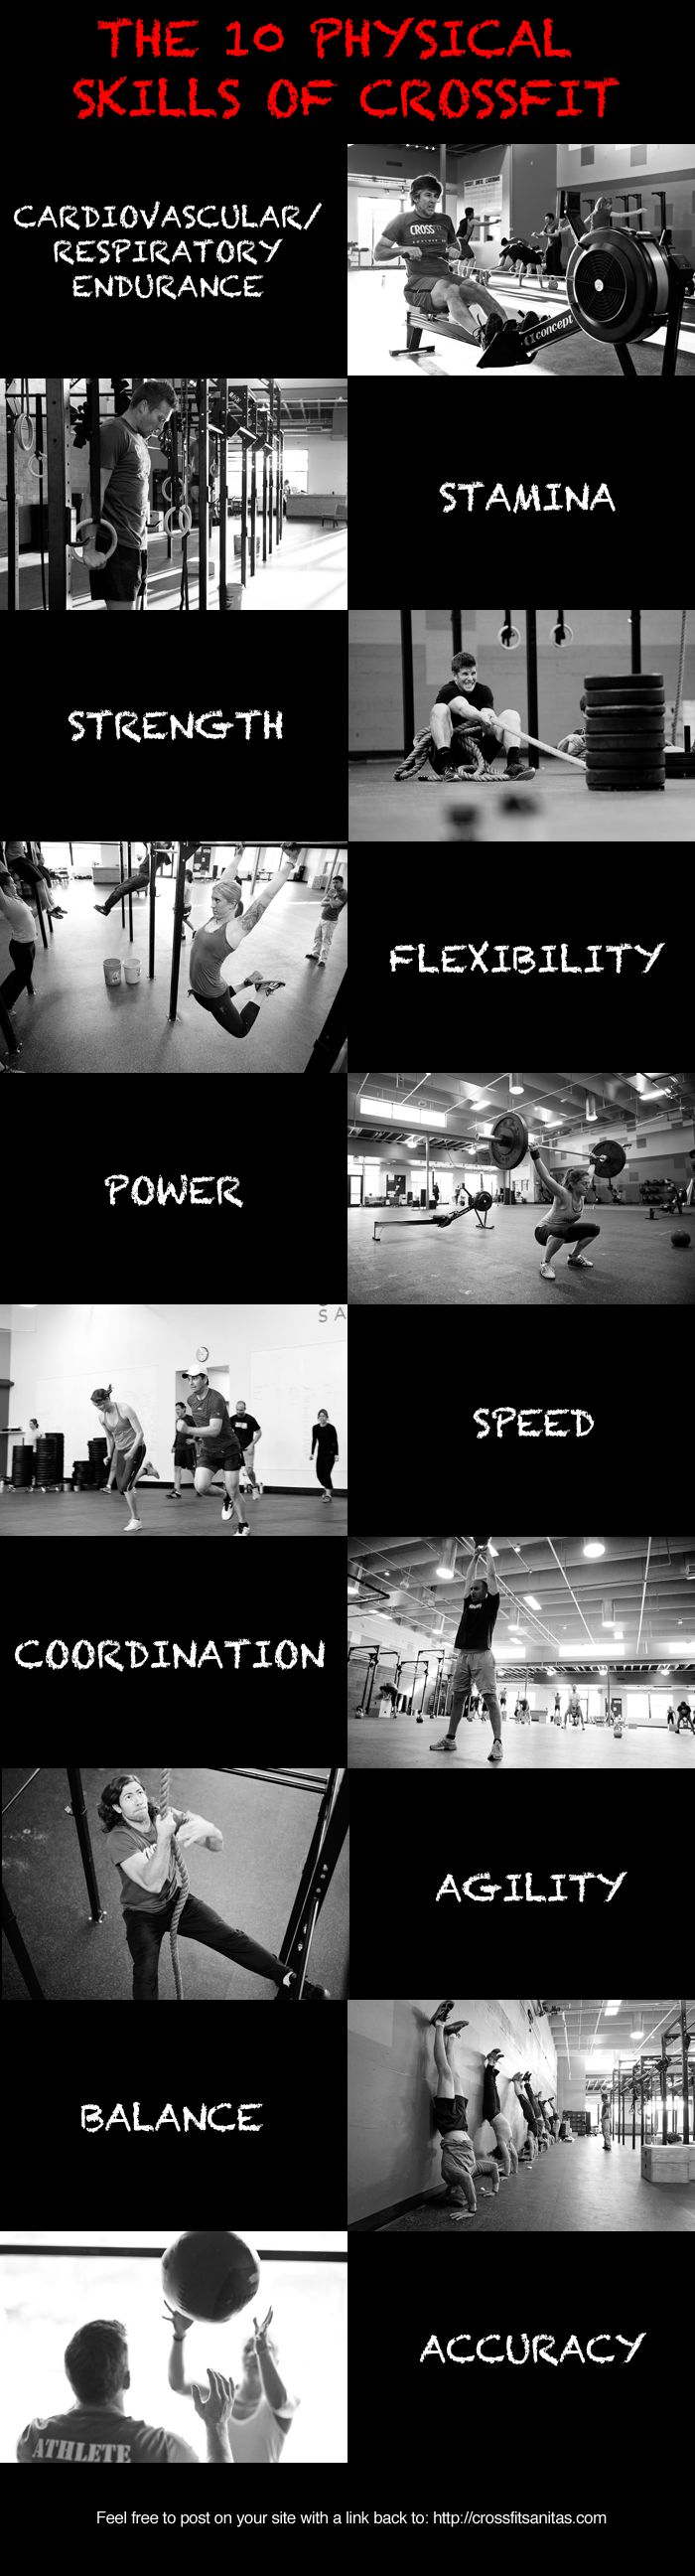 CrossFit is designed to develop 10 general physical skills.